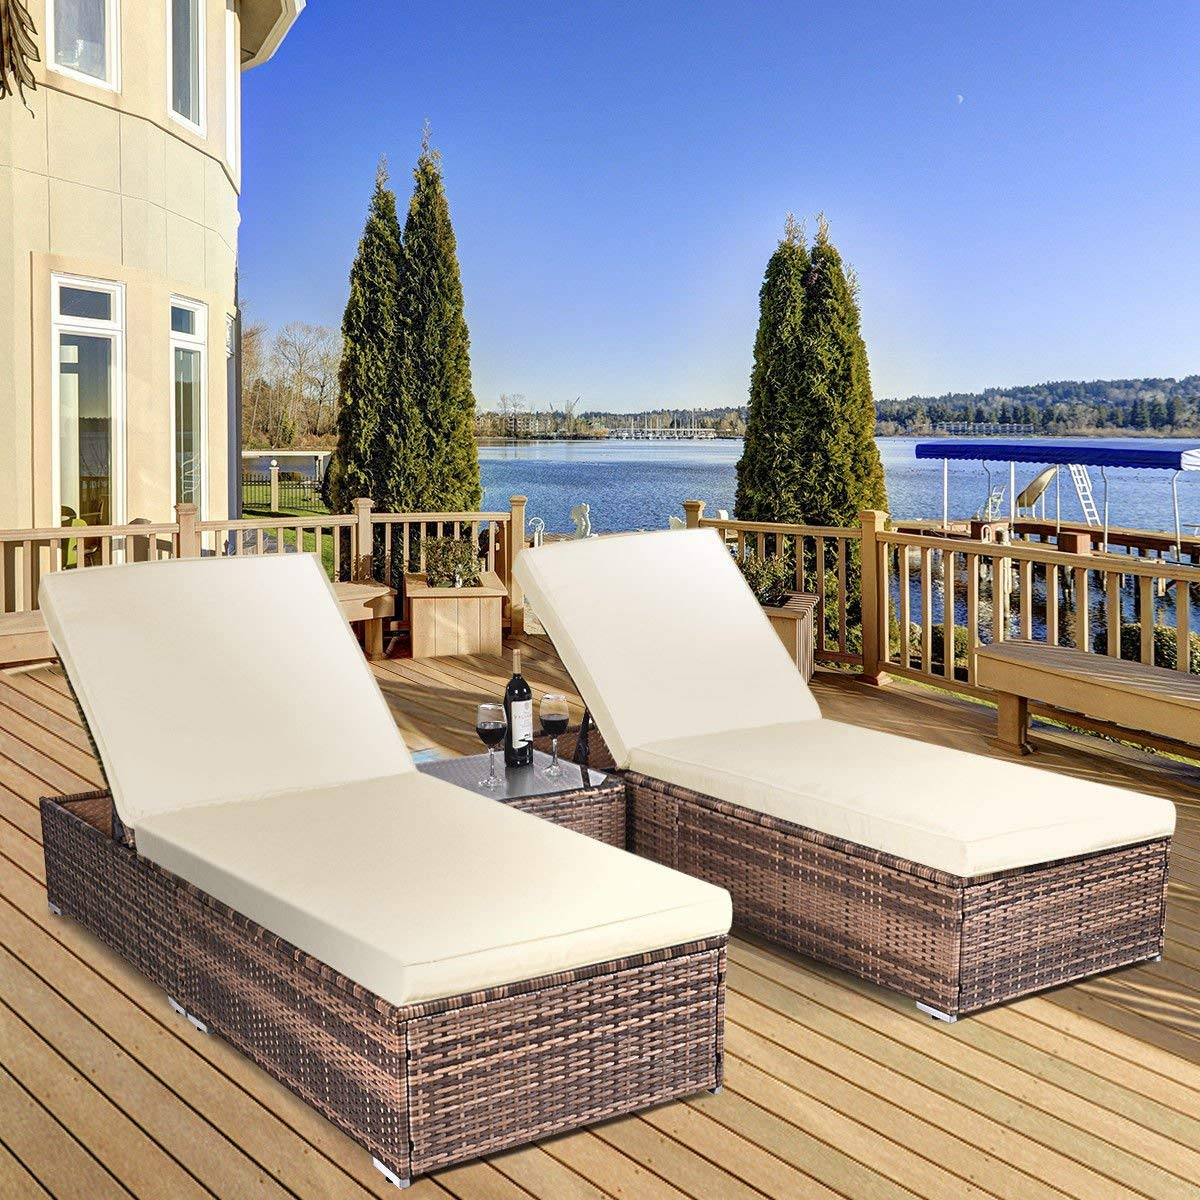 3 Piece Wicker Rattan Chaise Lounge Chair Set Patio Steel Furniture Brown Wicker,Brand new and good quality.Adjustable Patio Pool Chaise Lounge